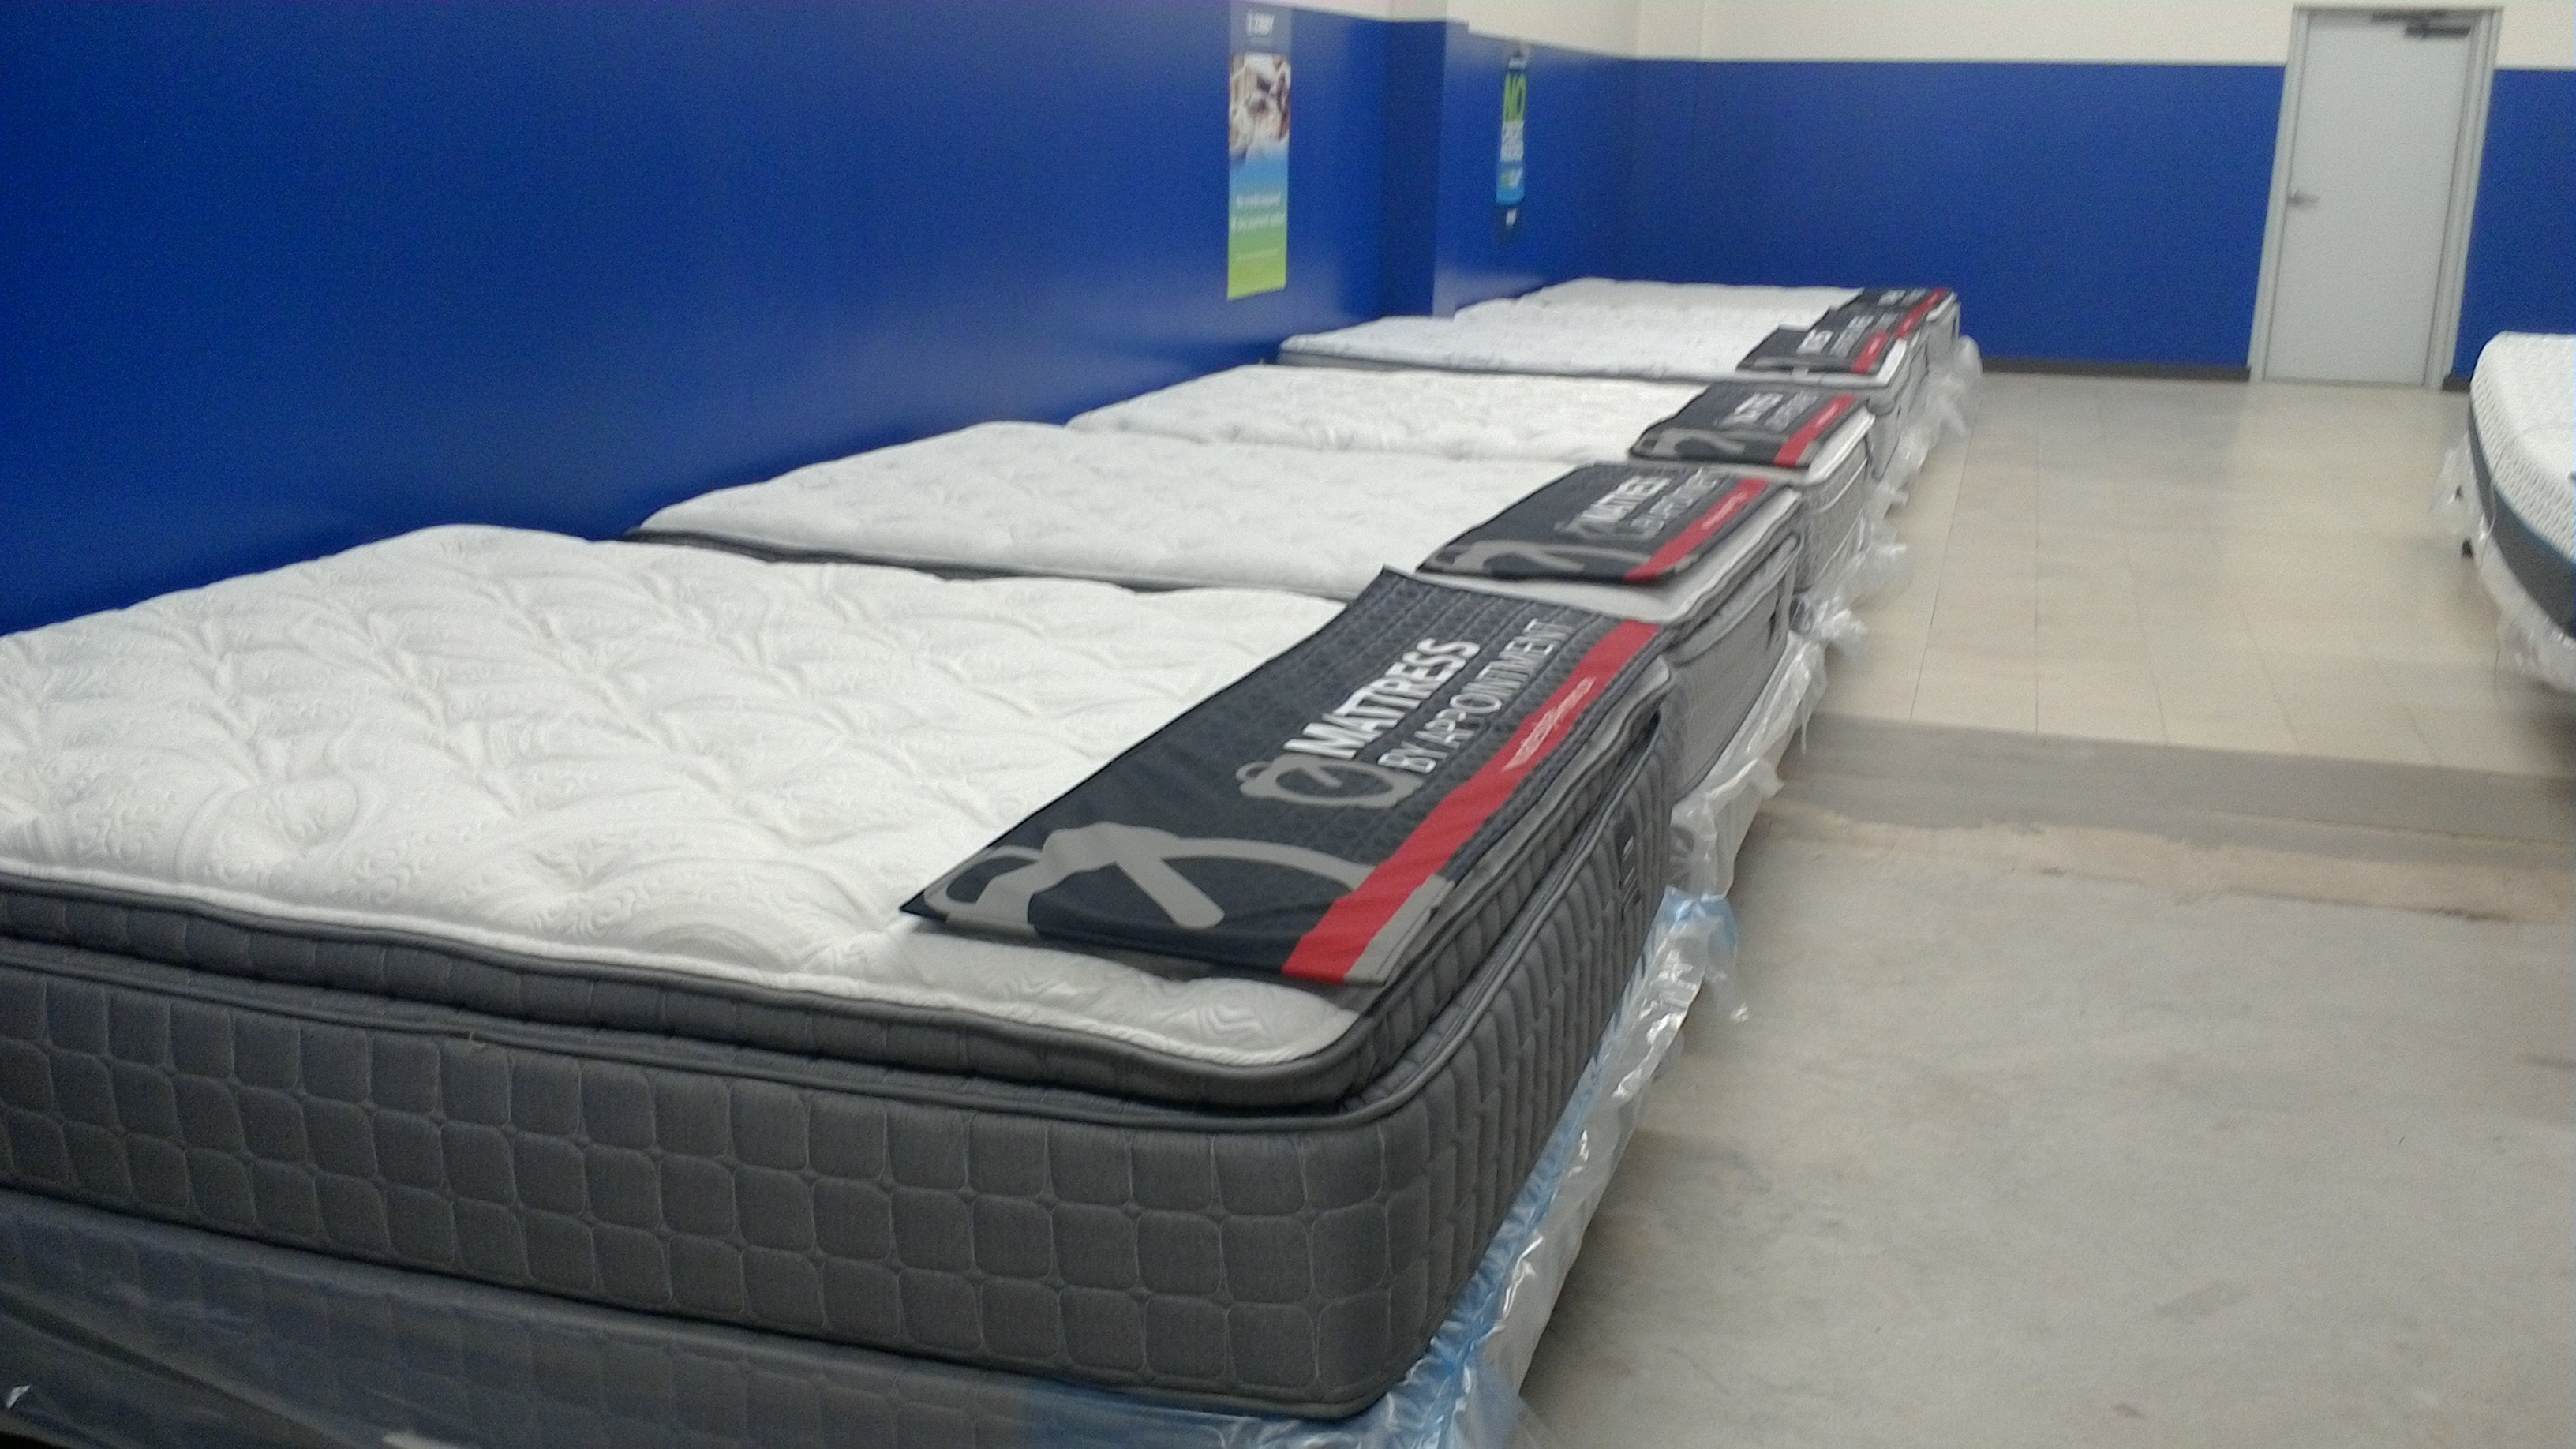 el tx decorative imgid uncategorized best expert concept mattress paso mattresses queen amazing popular store and for pics of photos the big lots